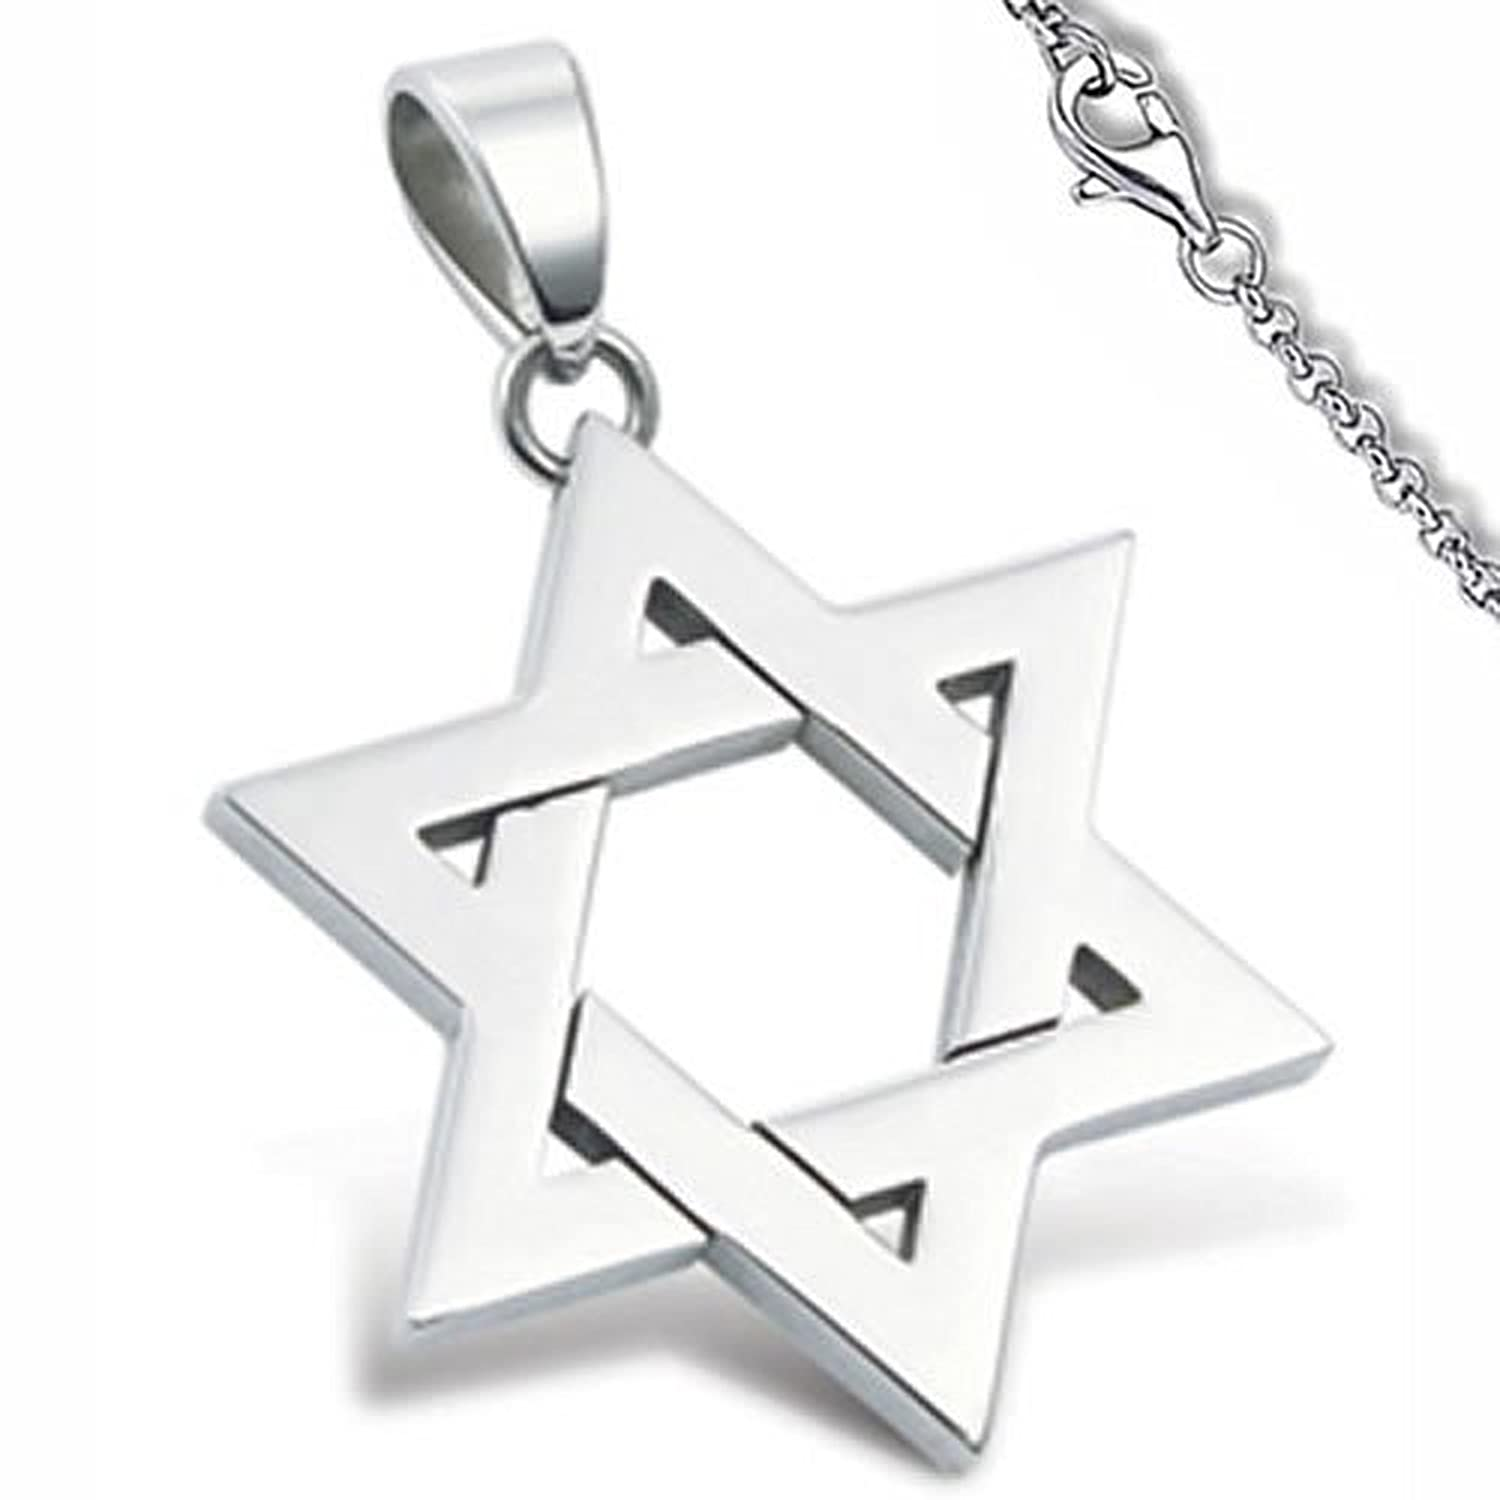 Stainless Steel Star Of David Pendant 22 Stainless Steel Circle Link Necklace is included